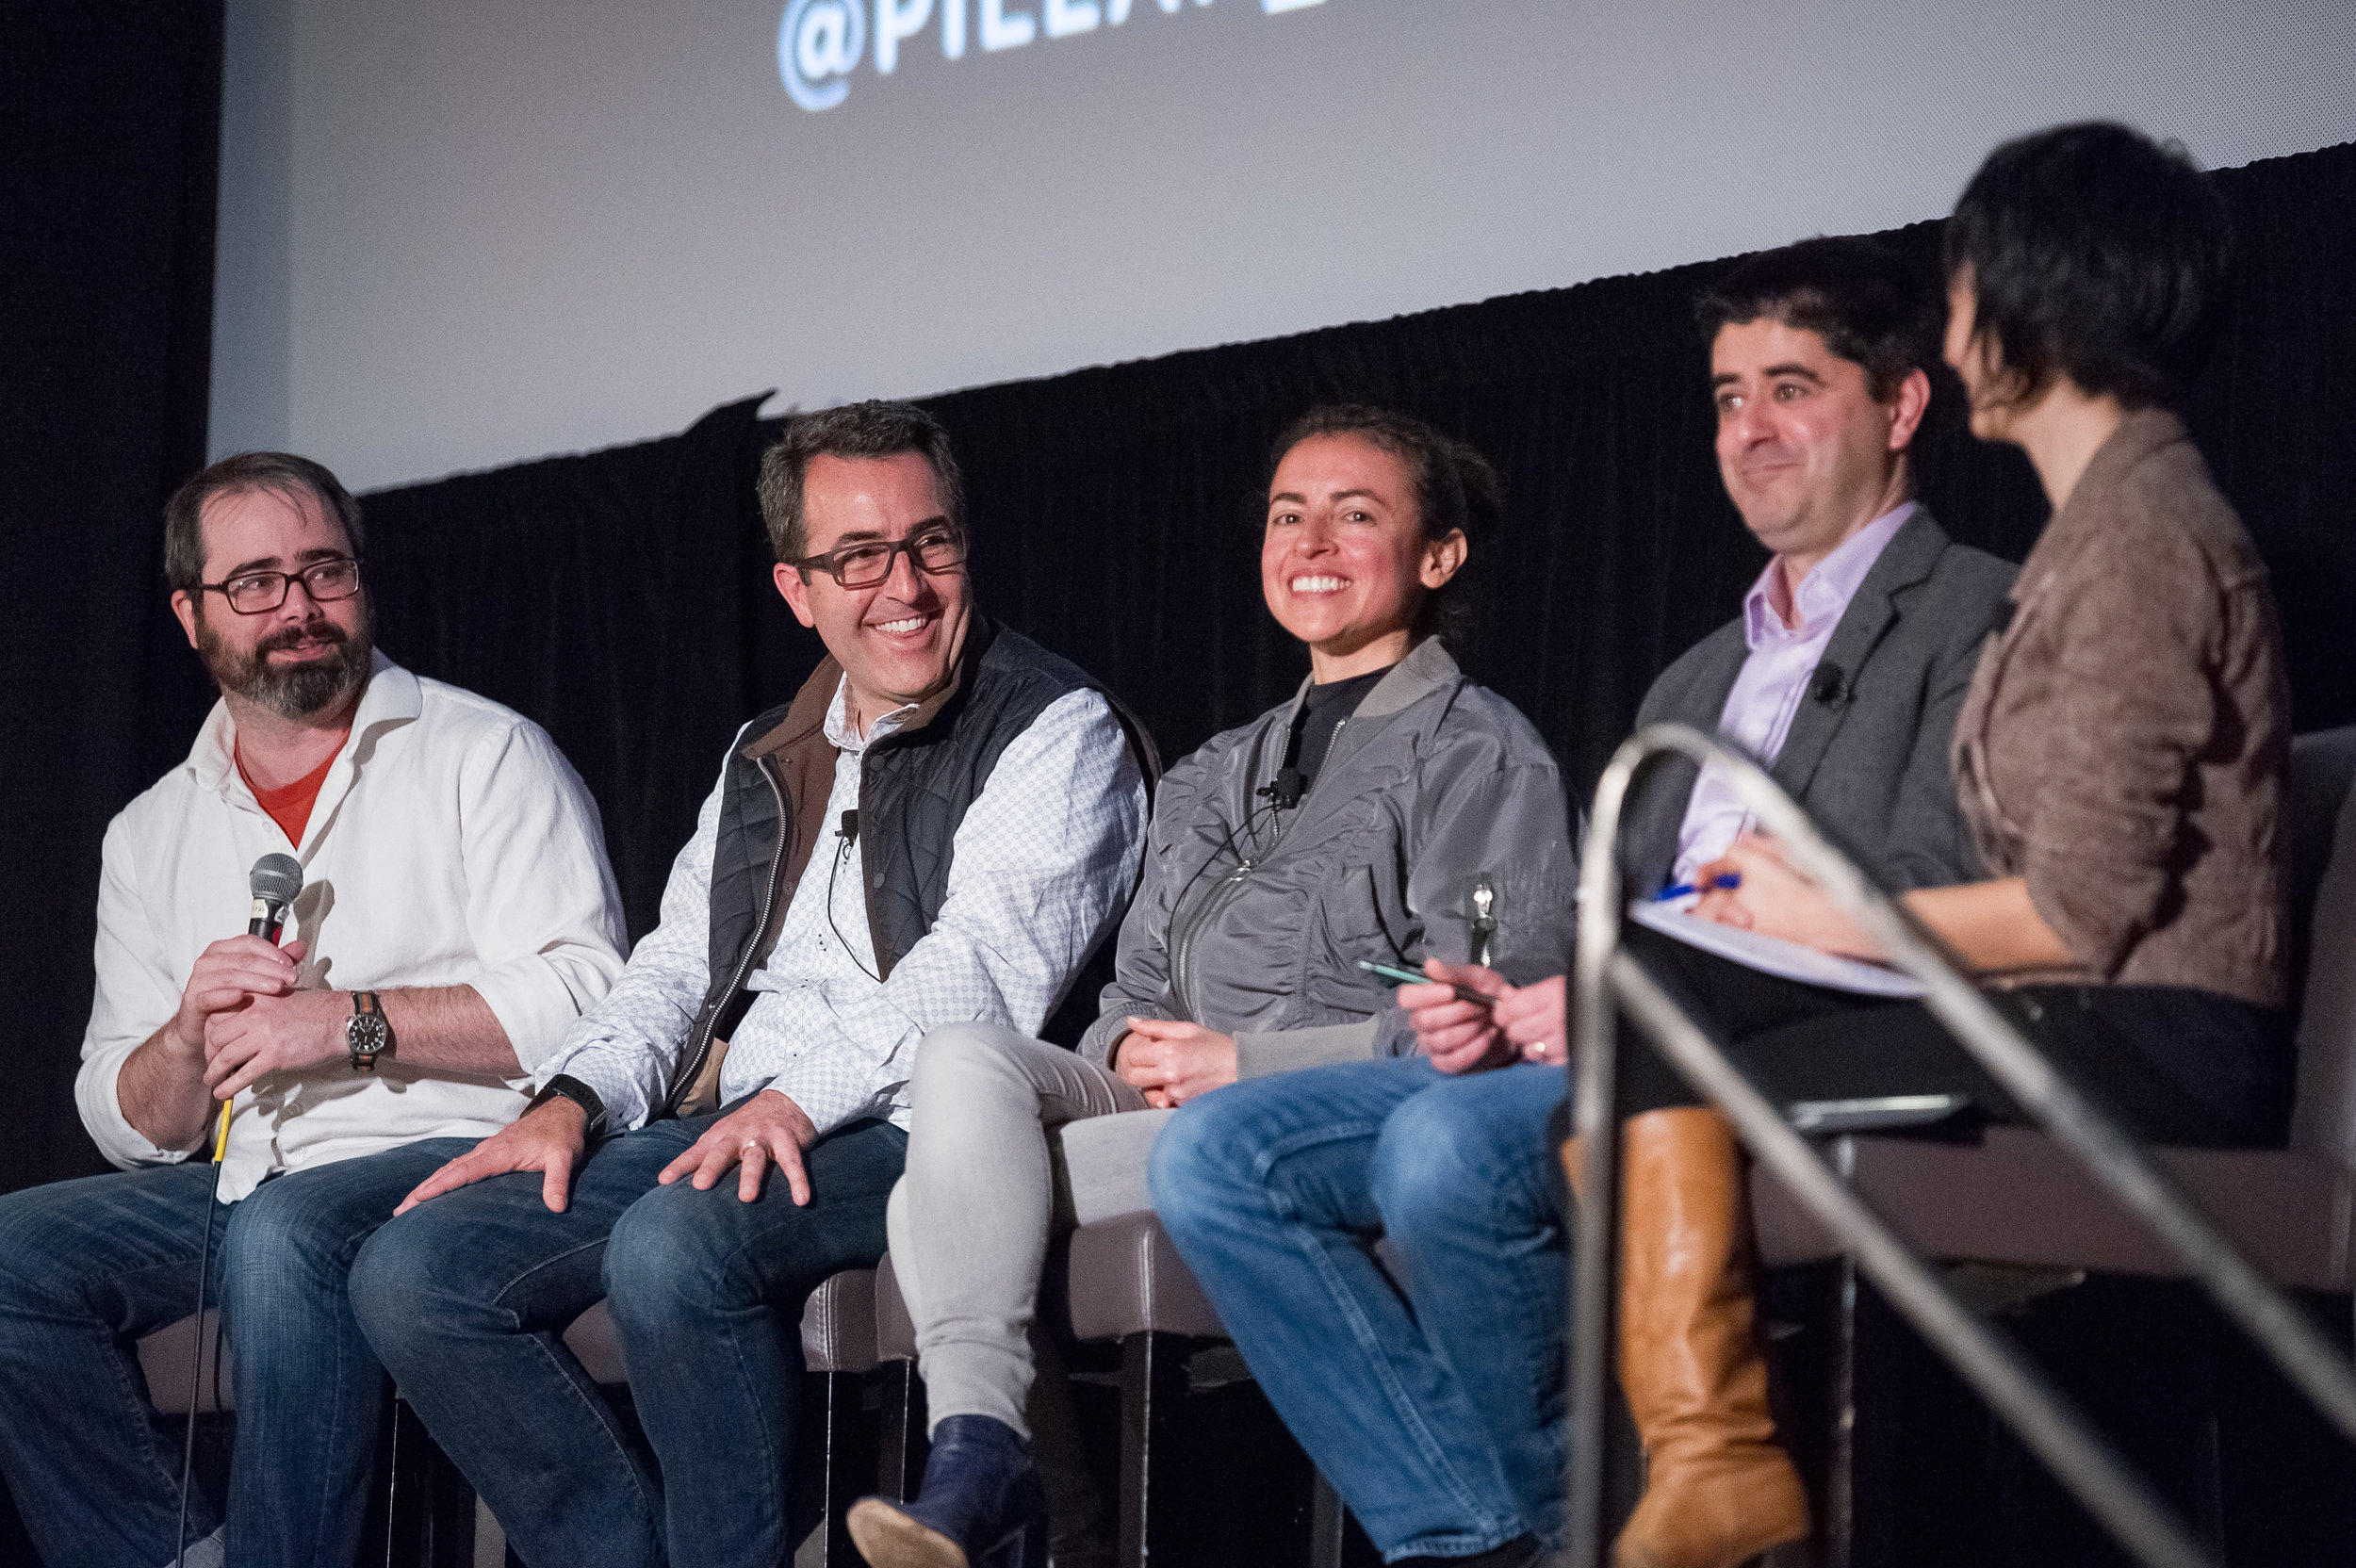 Rob Massey (second from left) on a panel at the (Off) The Chain Summit presented by Pillar